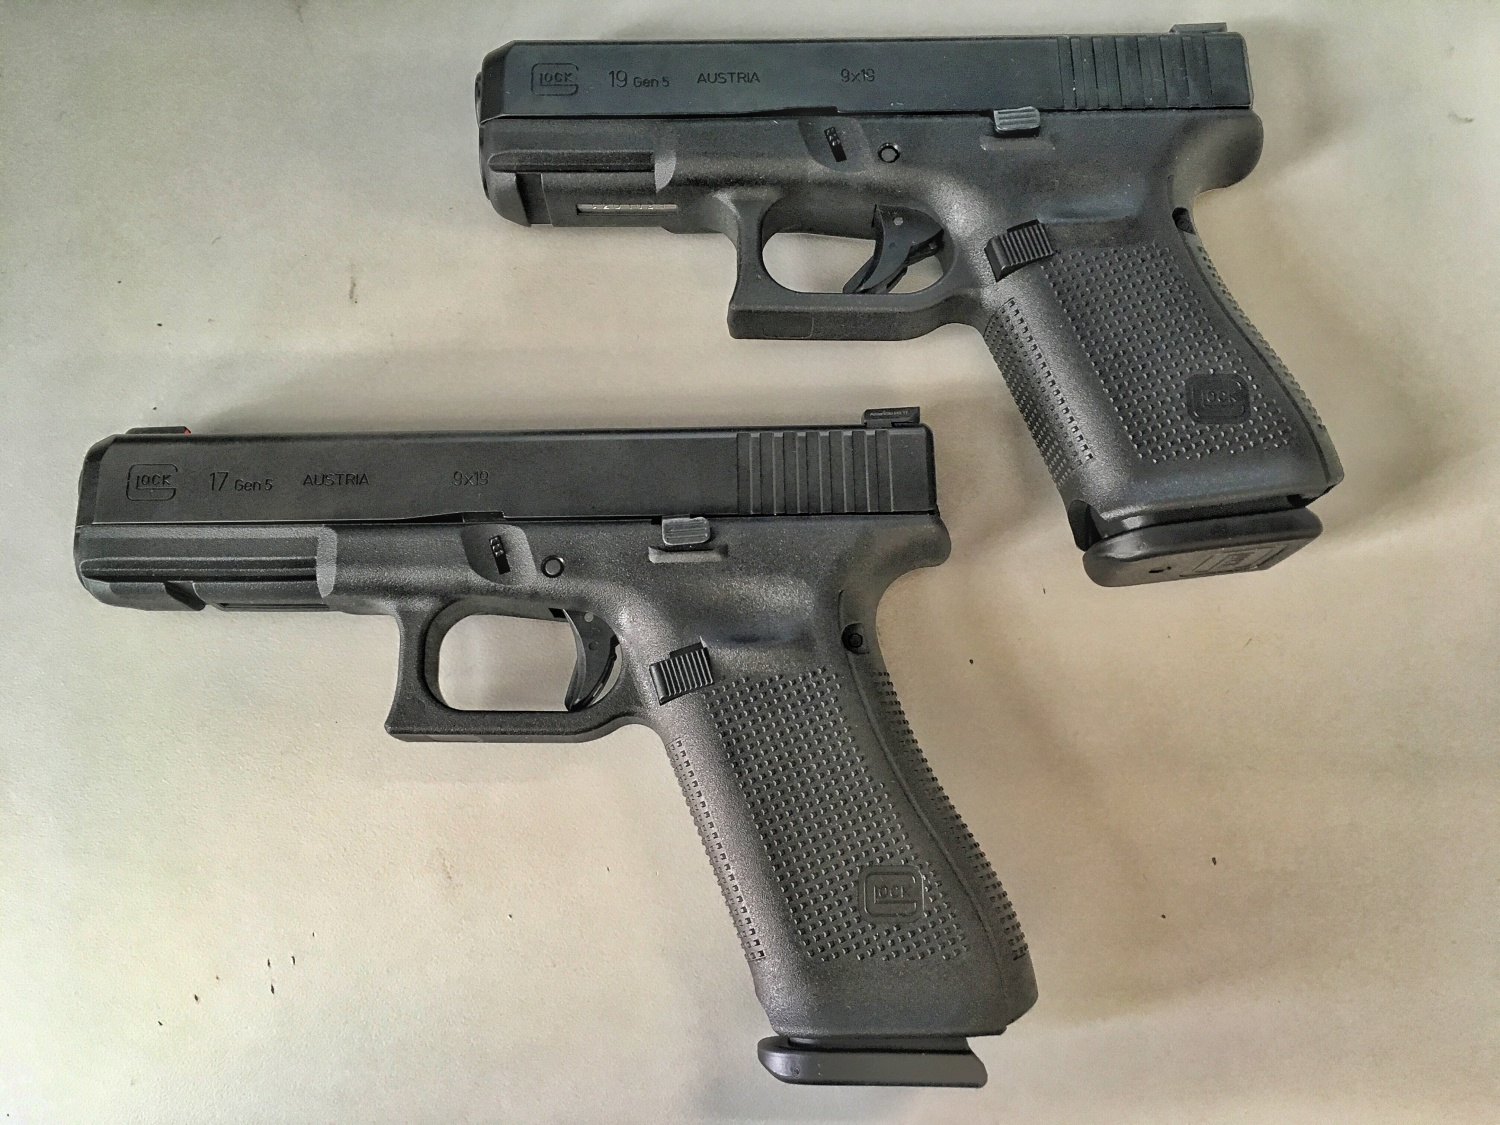 tfb first look the new gen5 glock 17 and gen5 glock 19